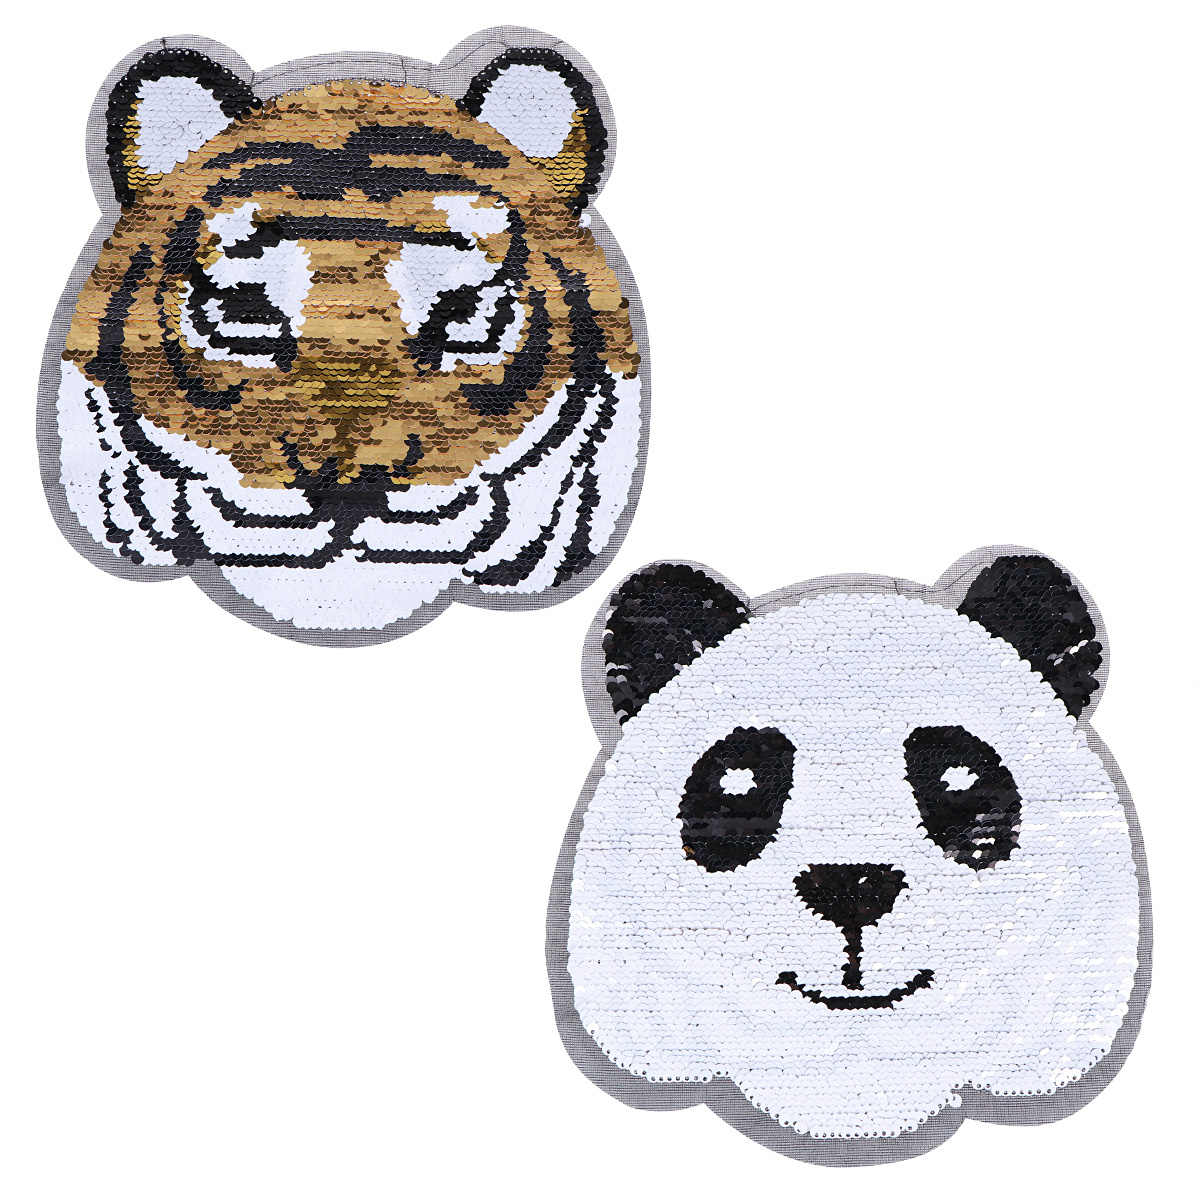 Clothes Patches Cartoon Panda Embroidery Patches Sequined Patches for Jackets Backpacks DIY Applique On Clothes Stickers